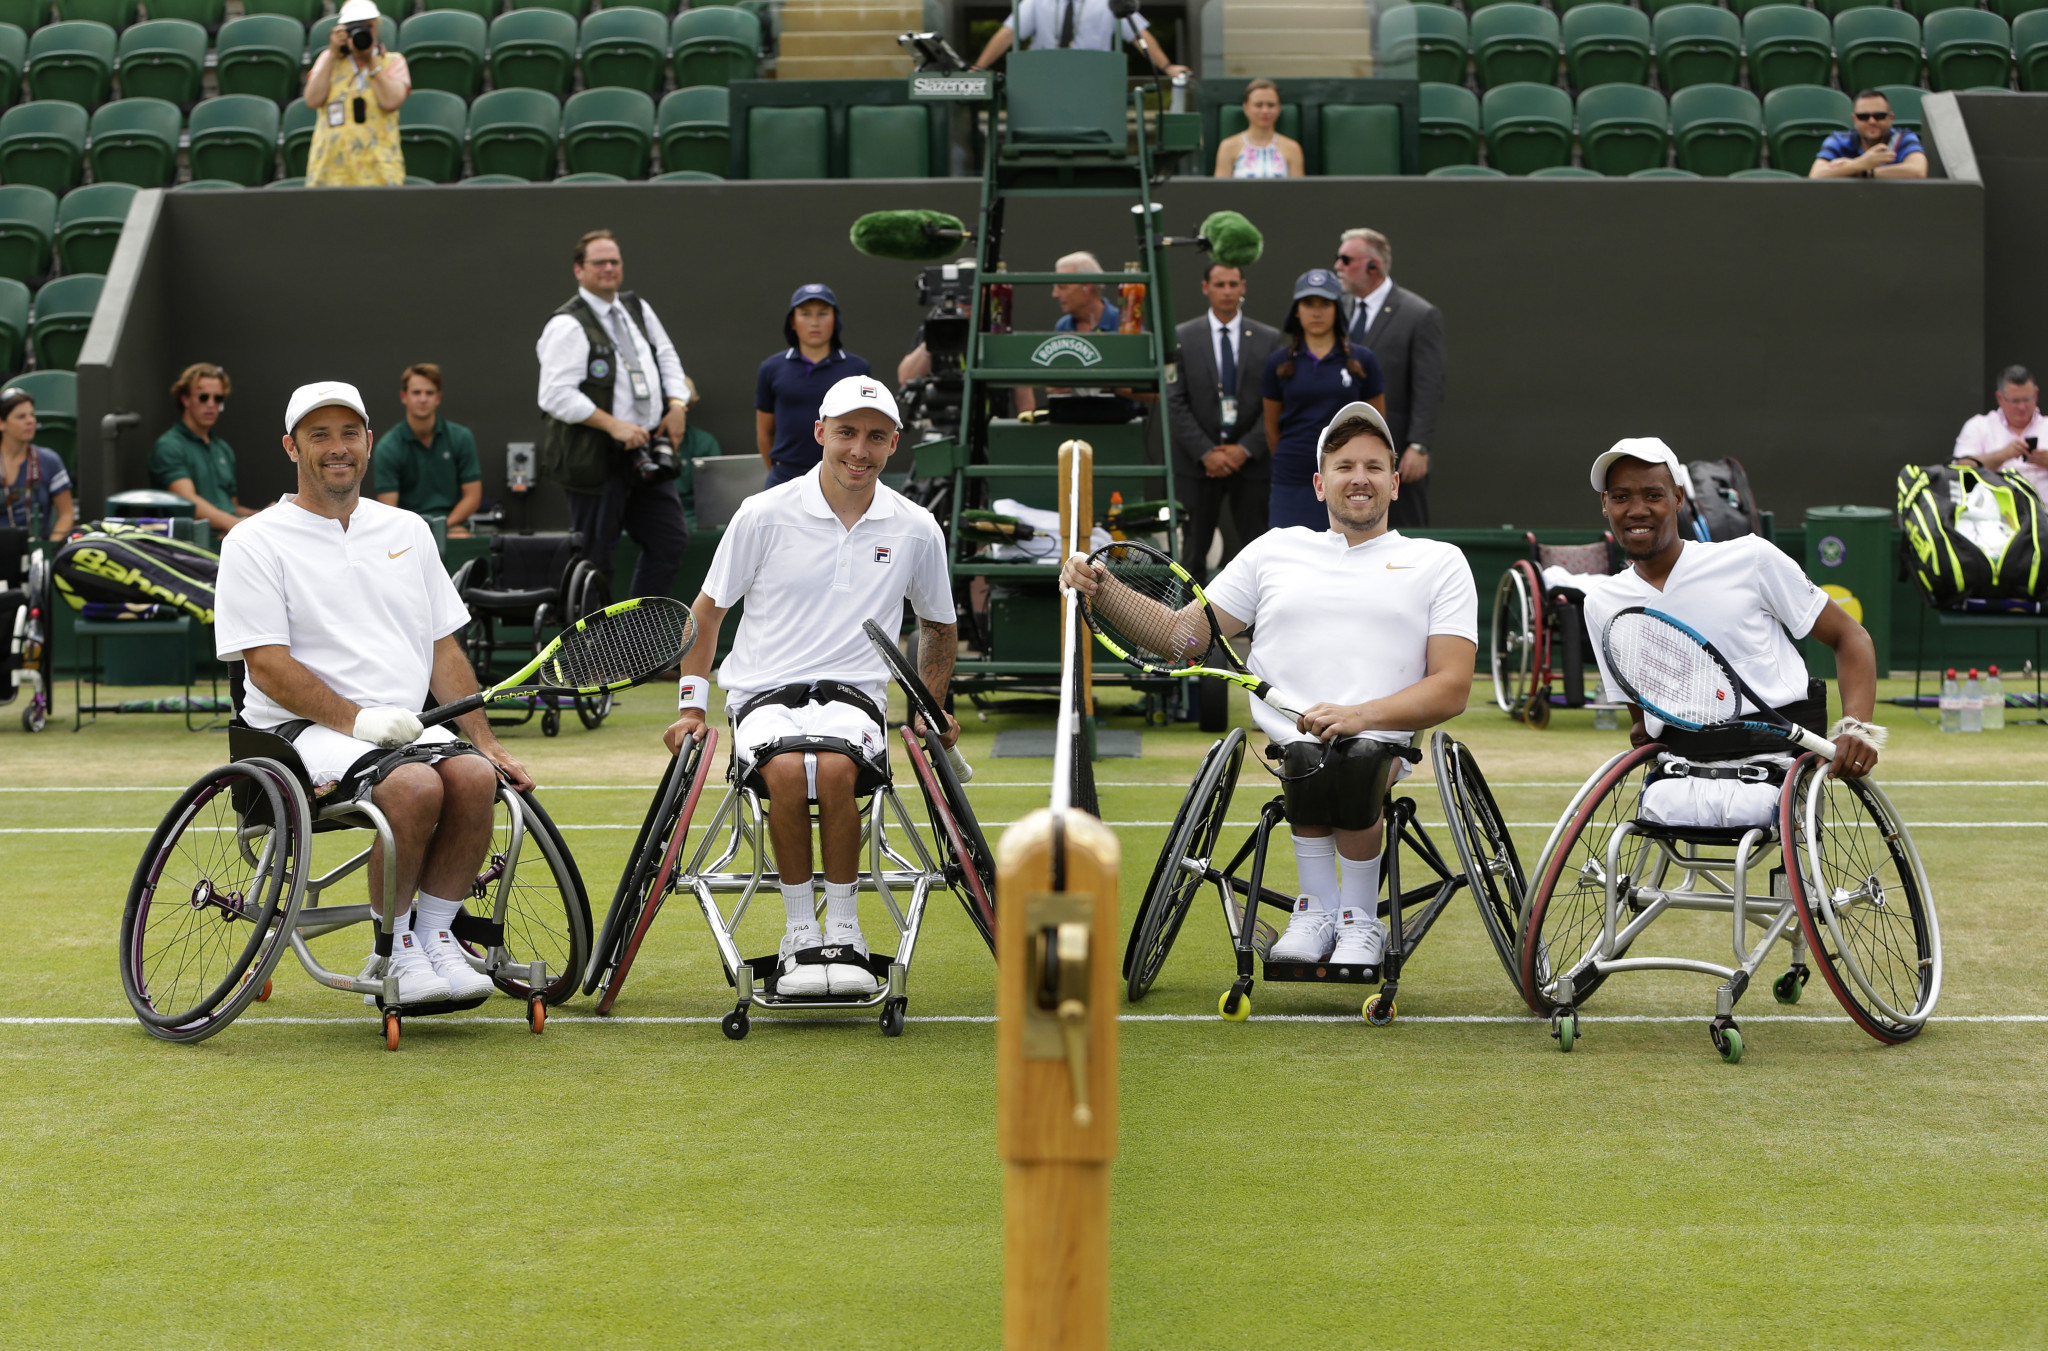 Wheelchair tennis history beckons at Wimbledon